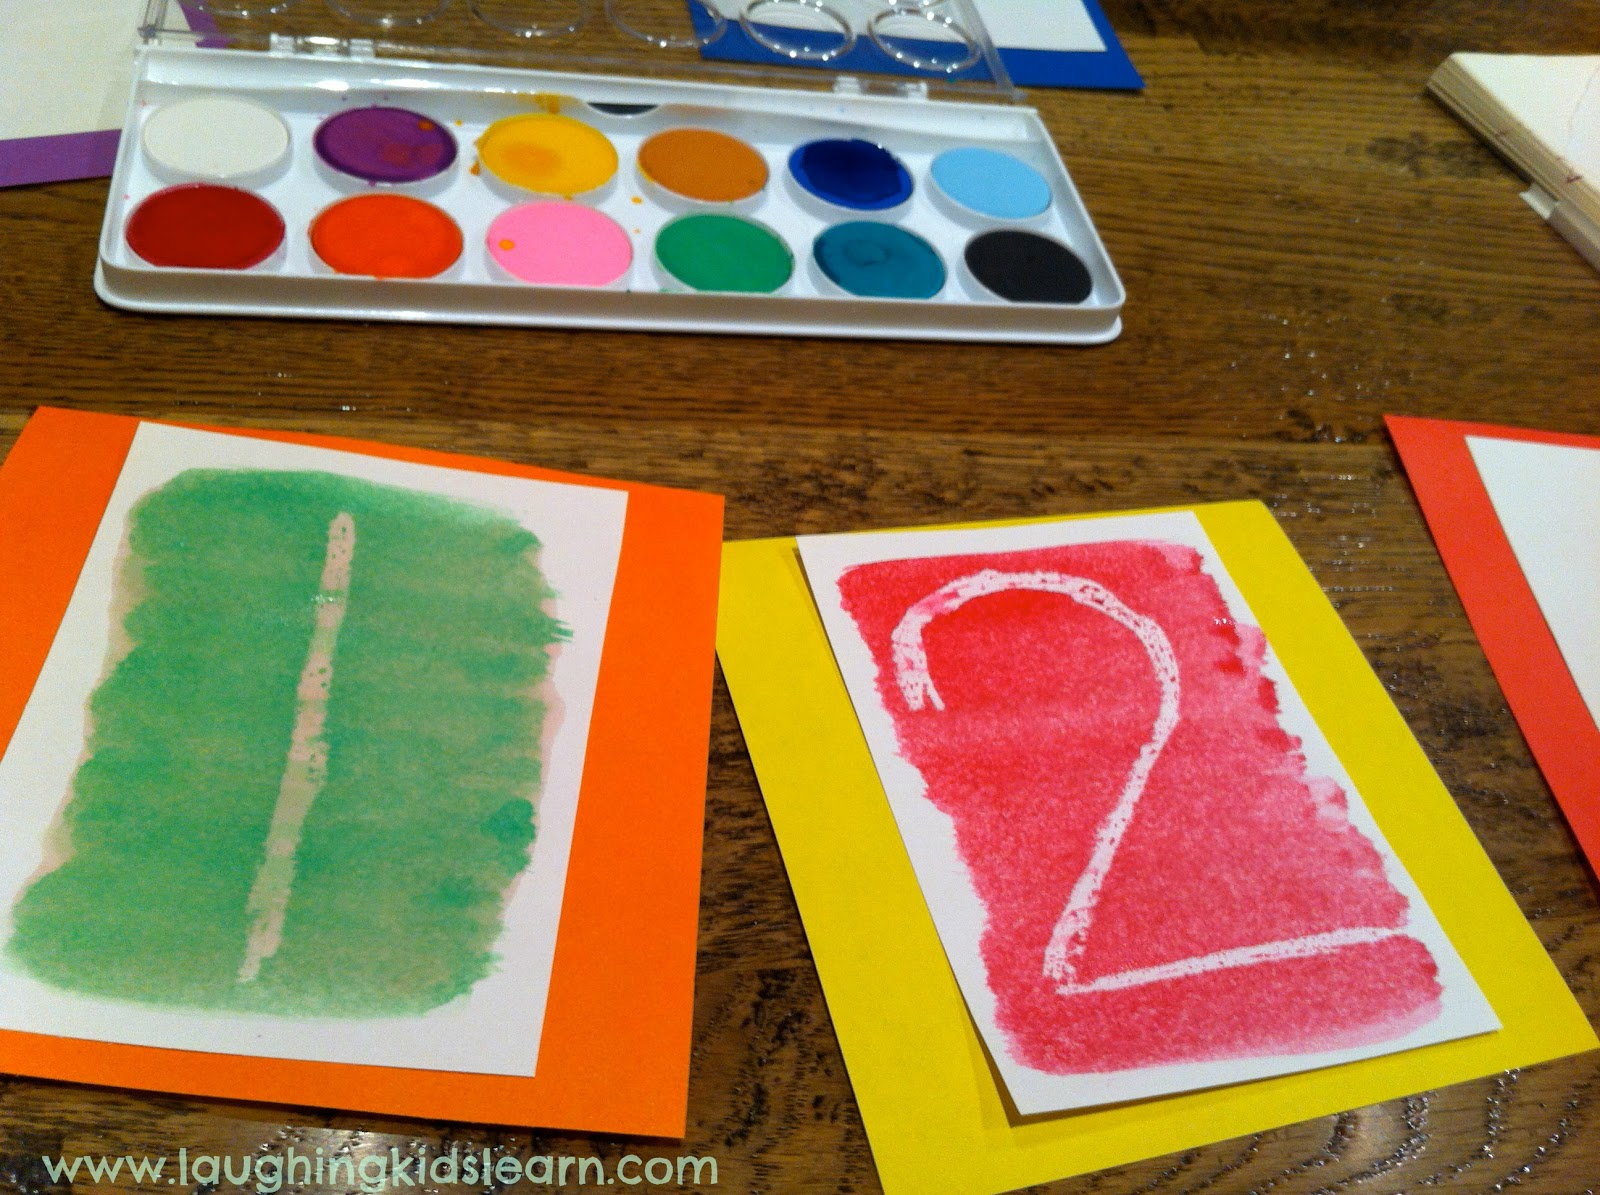 How do children learn to paint? - Quora